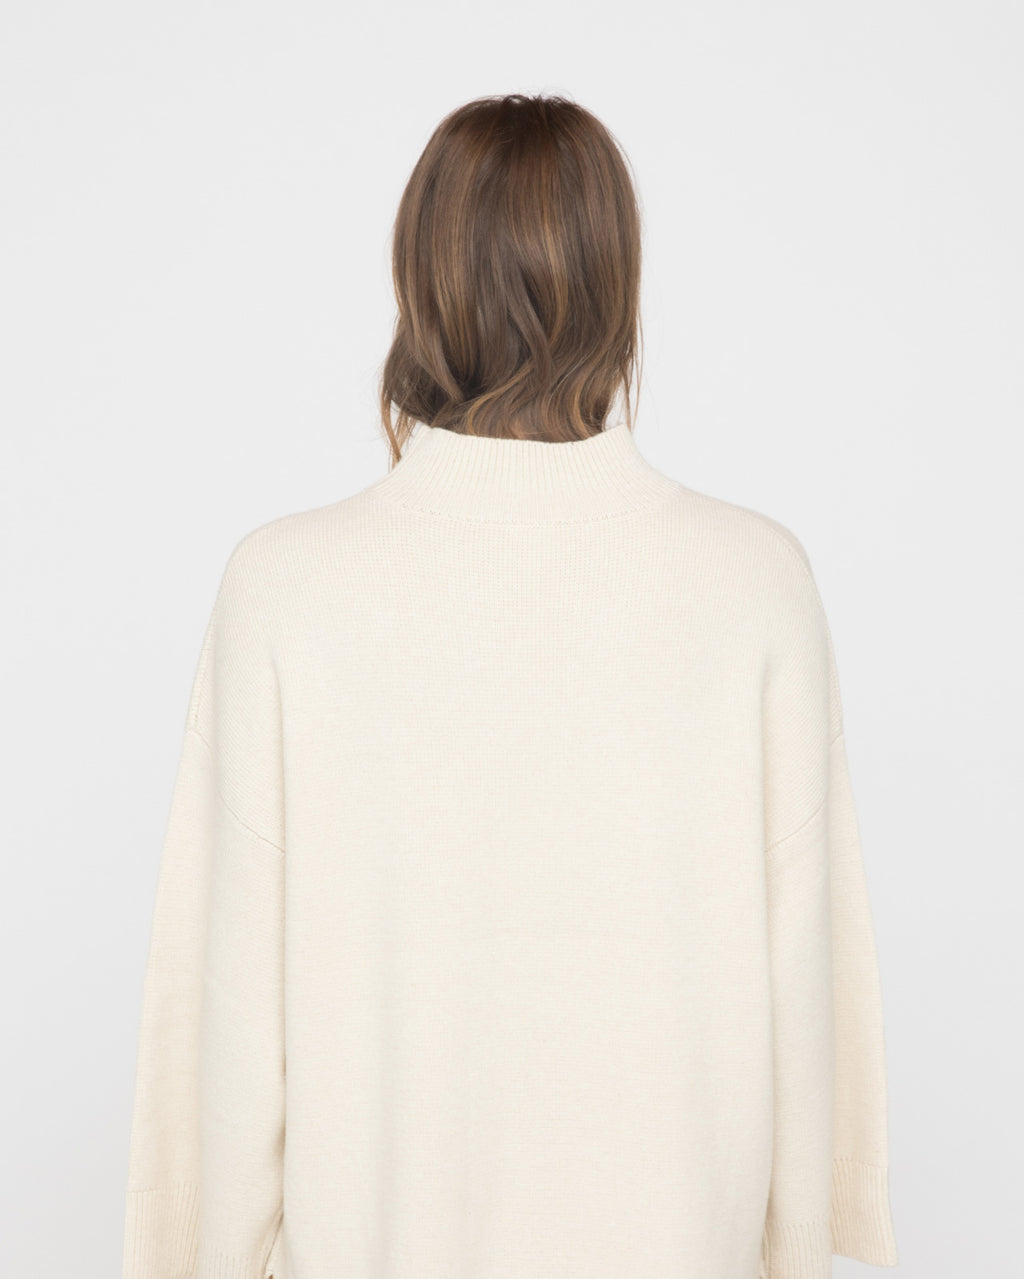 The Winona Sweater in Almond